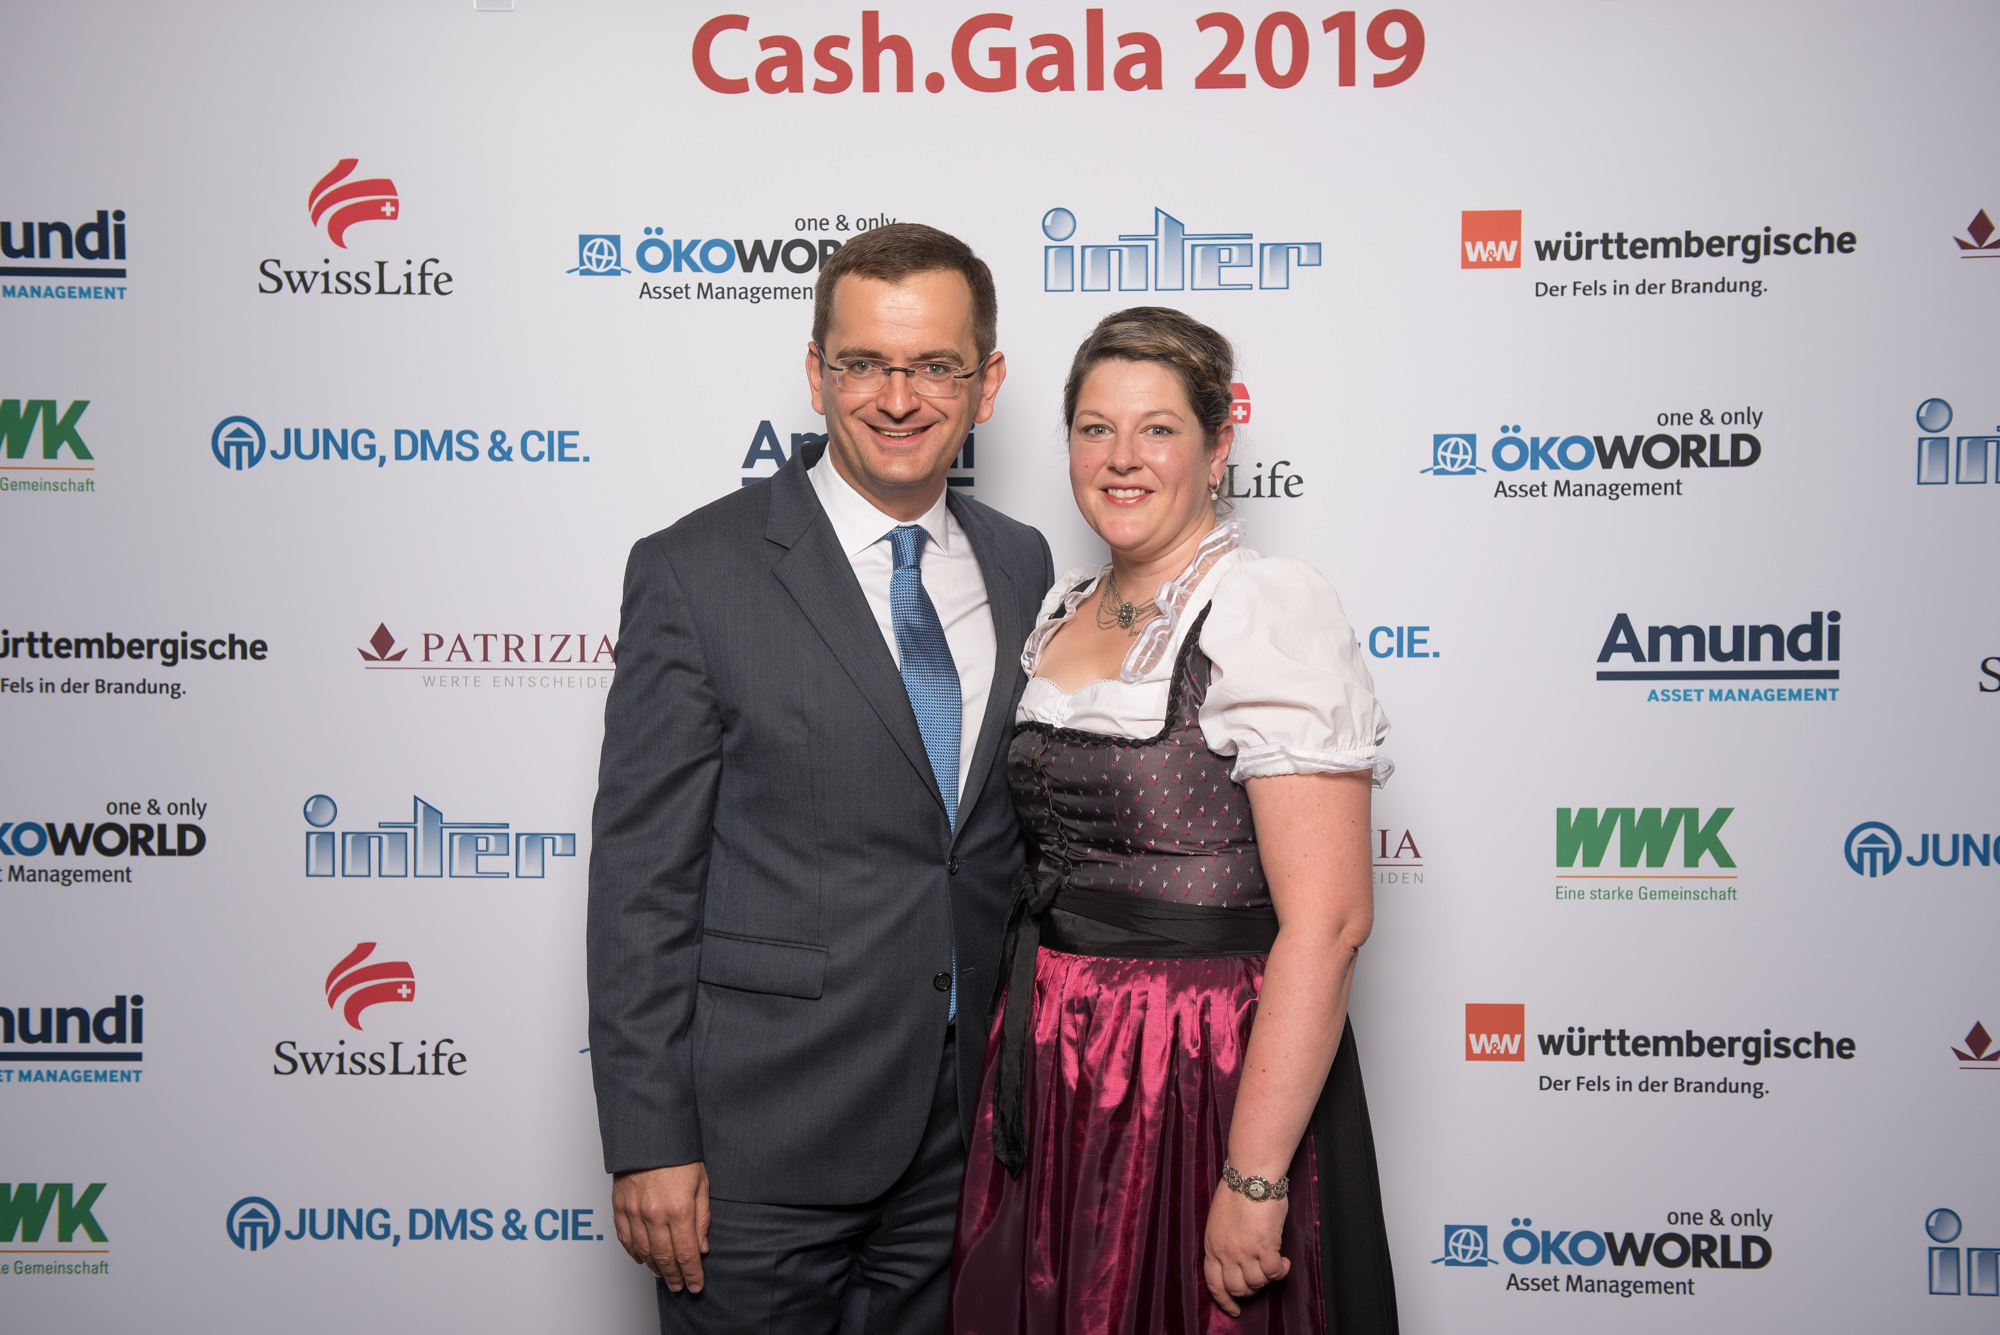 CashGala 2019 0066 AM DSC7141 in Cash.Gala 2019